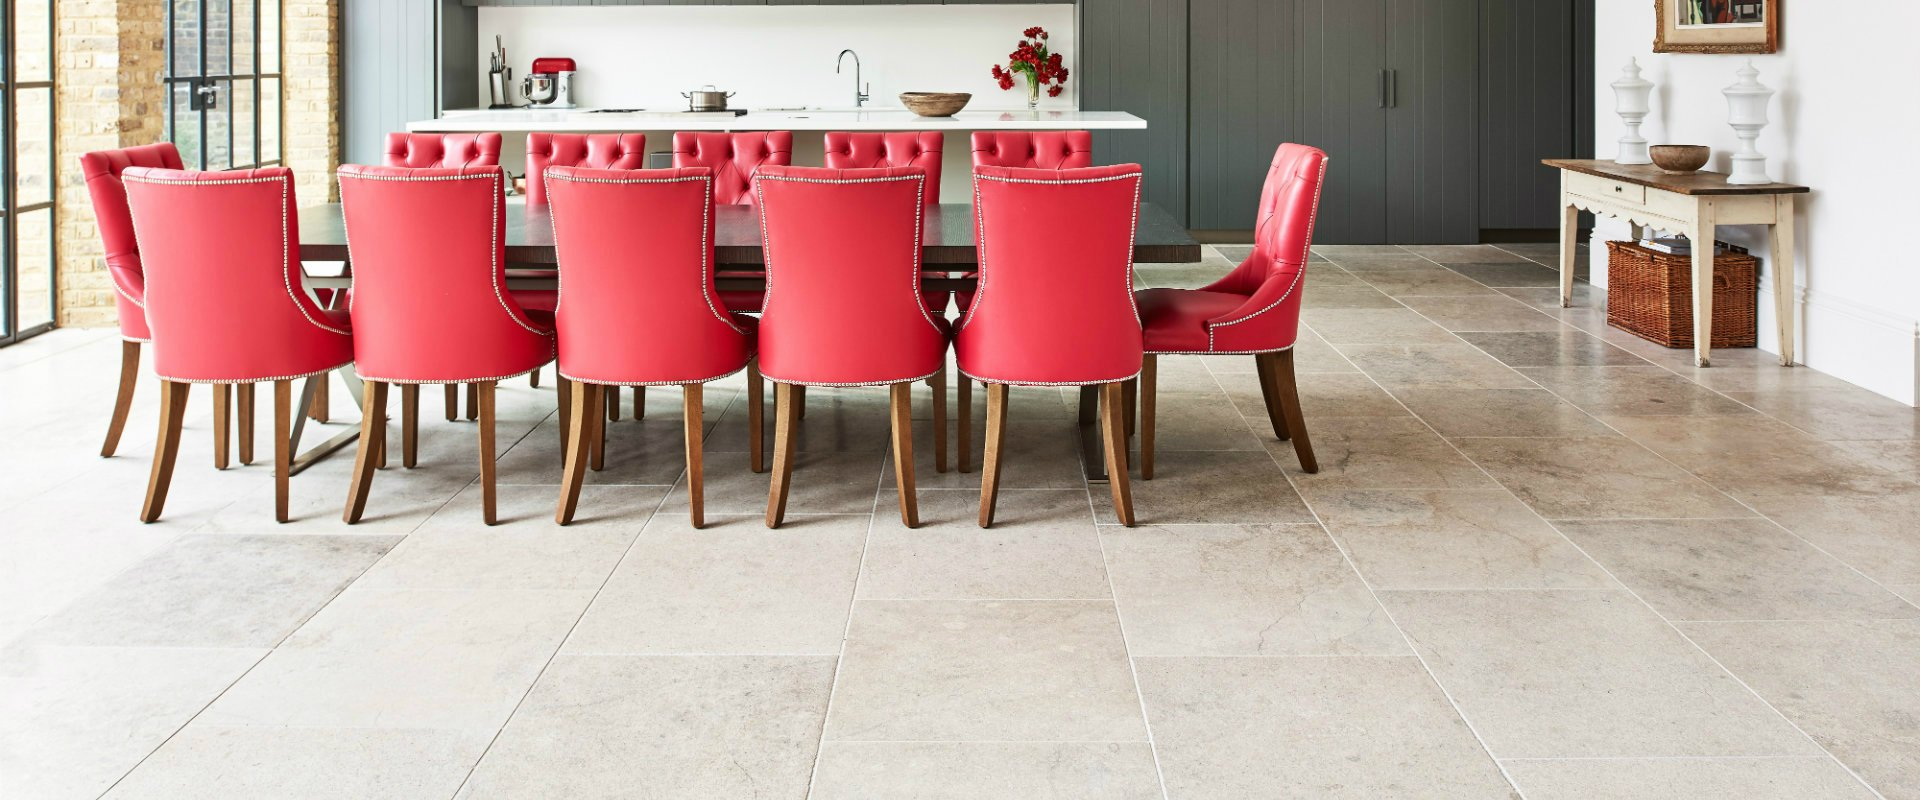 Up to 50% off Beautiful Natural Stone and Porcelain